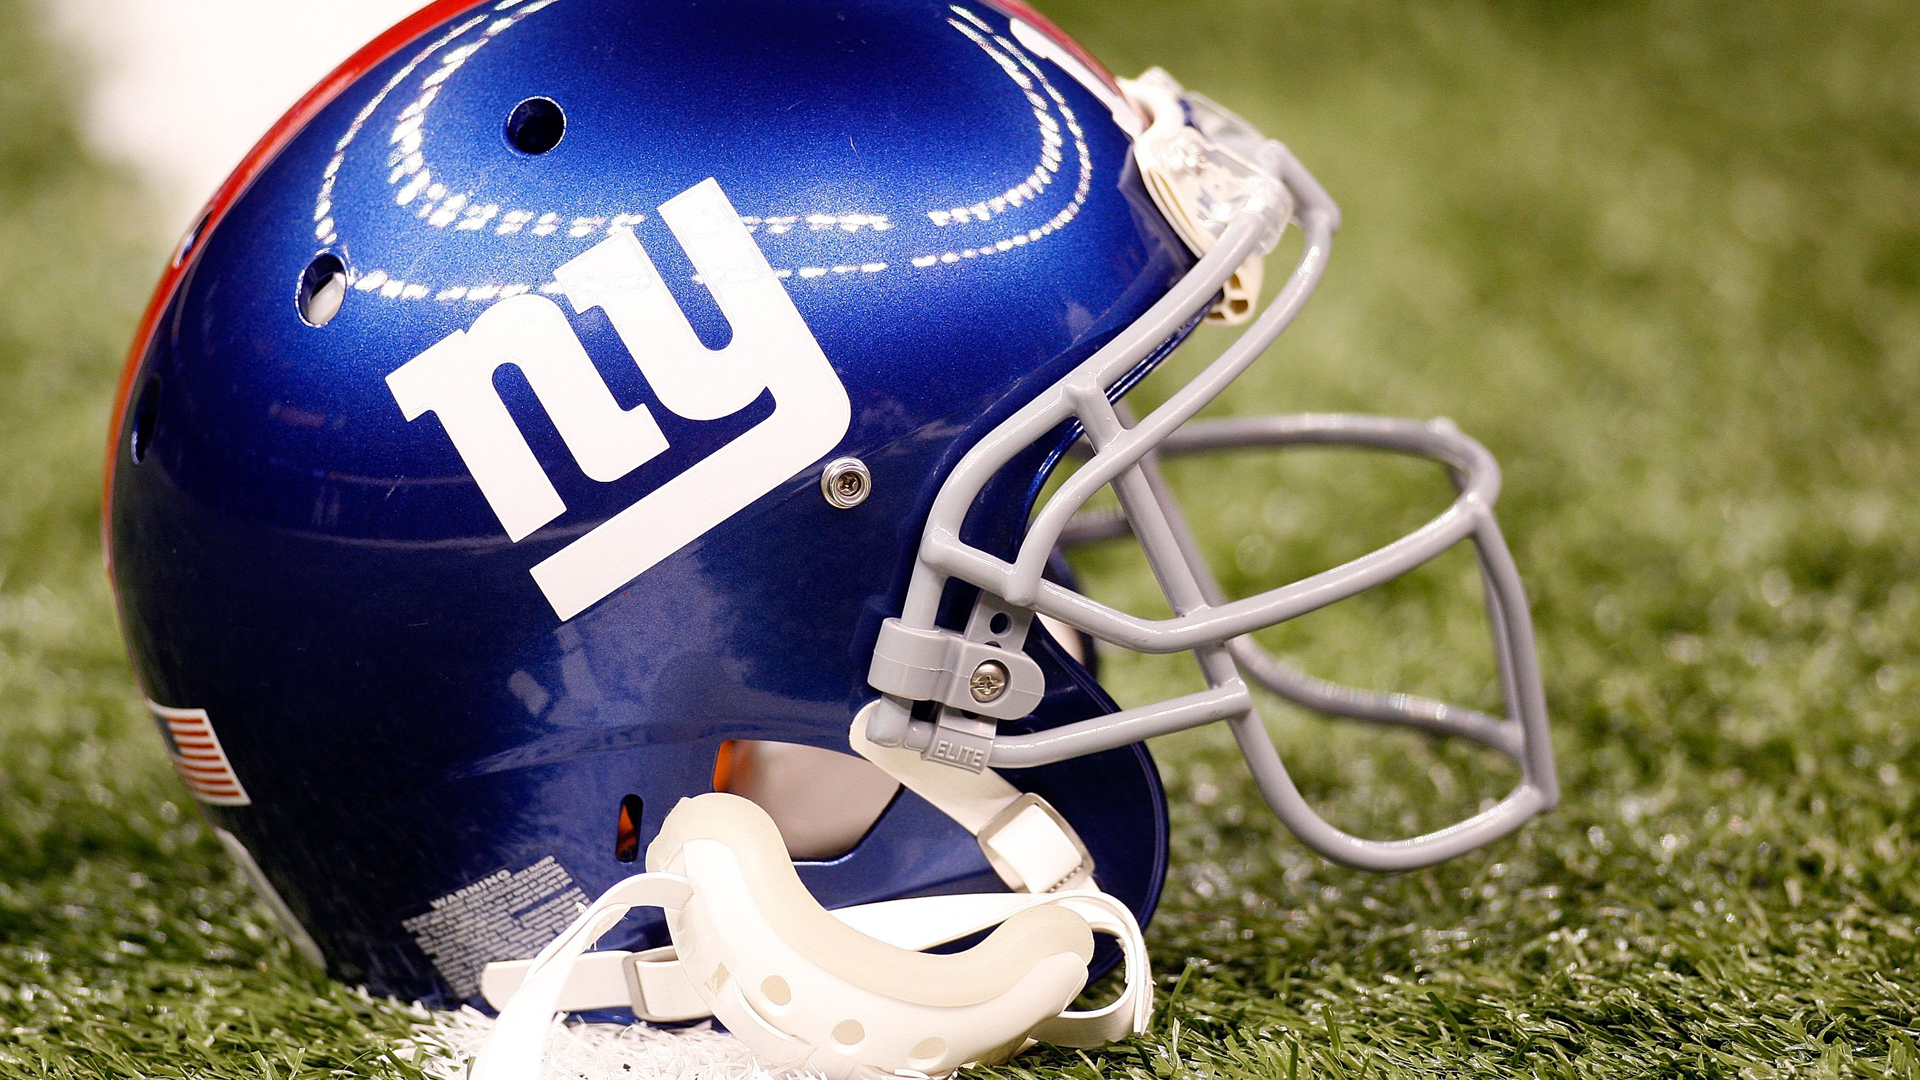 New York Giants Hd Wallpaper